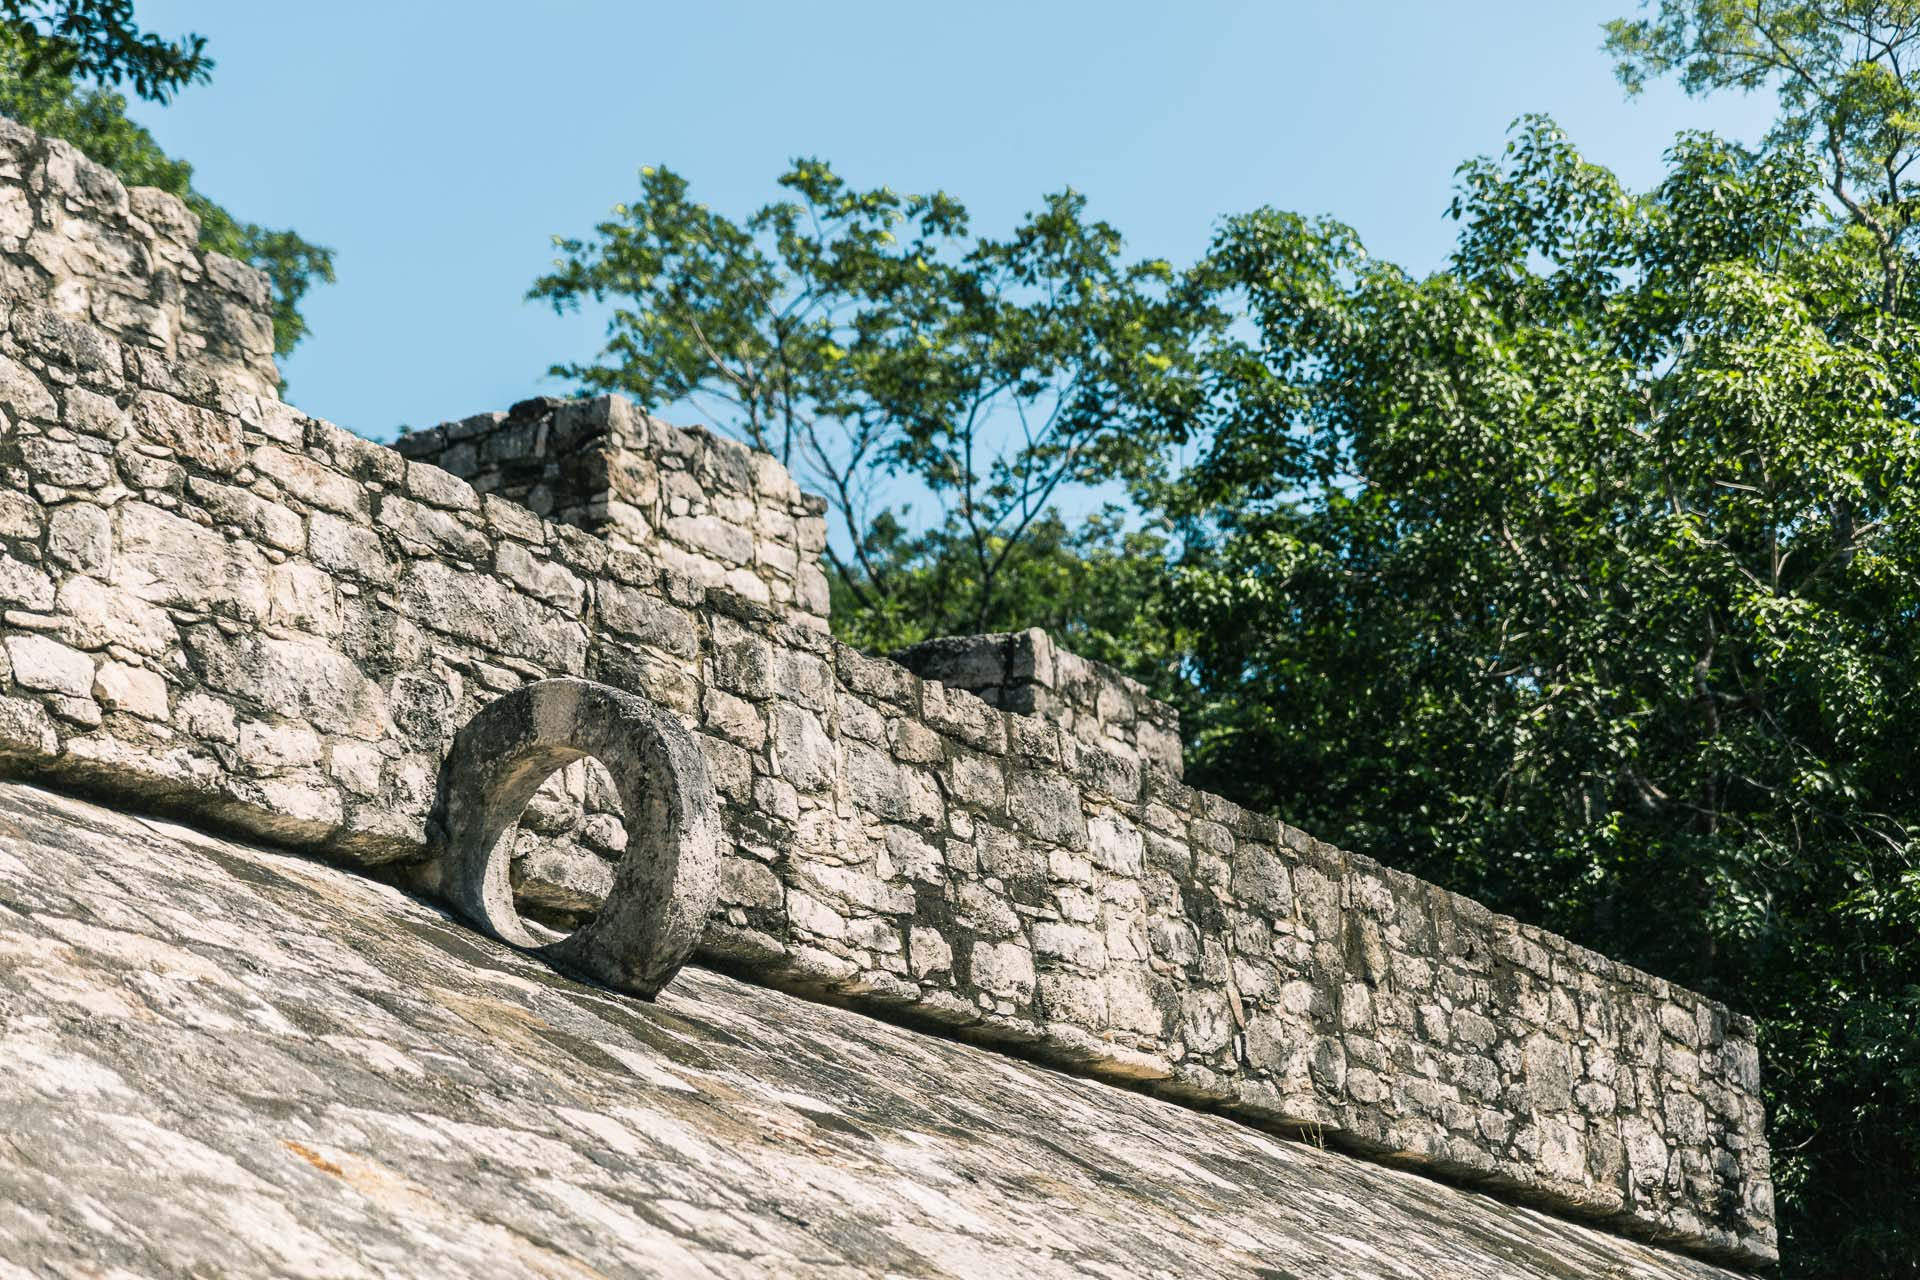 One of the goals at the Mayan ball court.